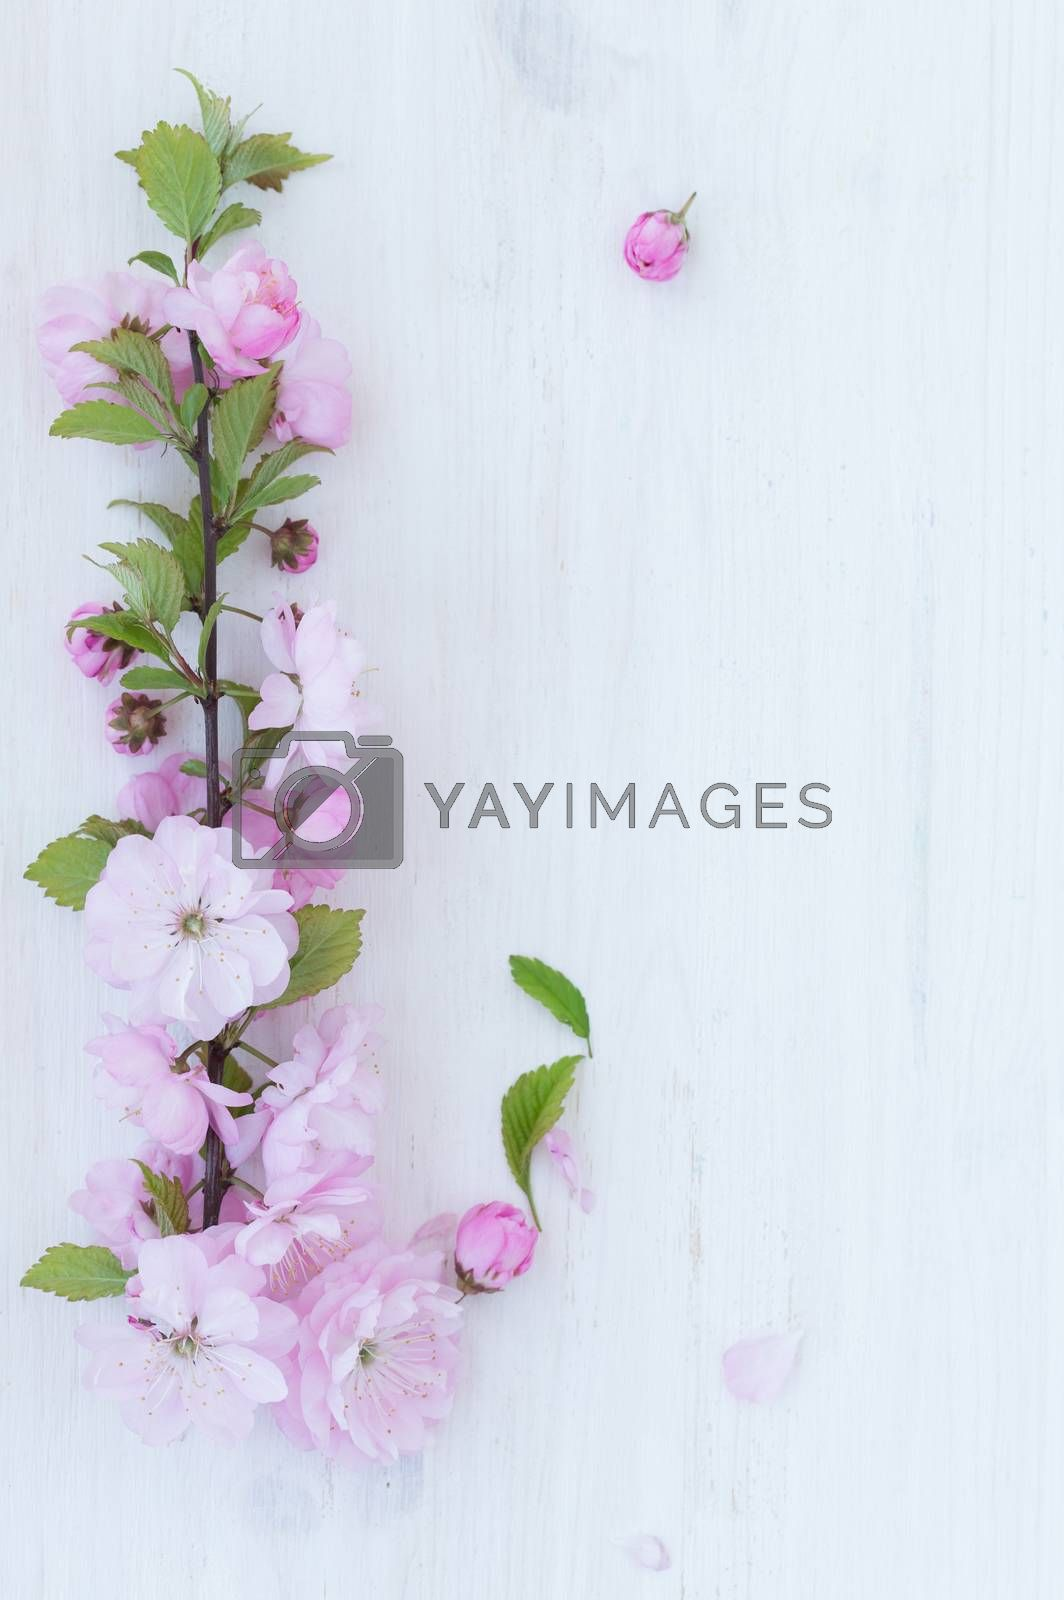 Royalty free image of Pink flowers close-up on wooden background by vlad_star